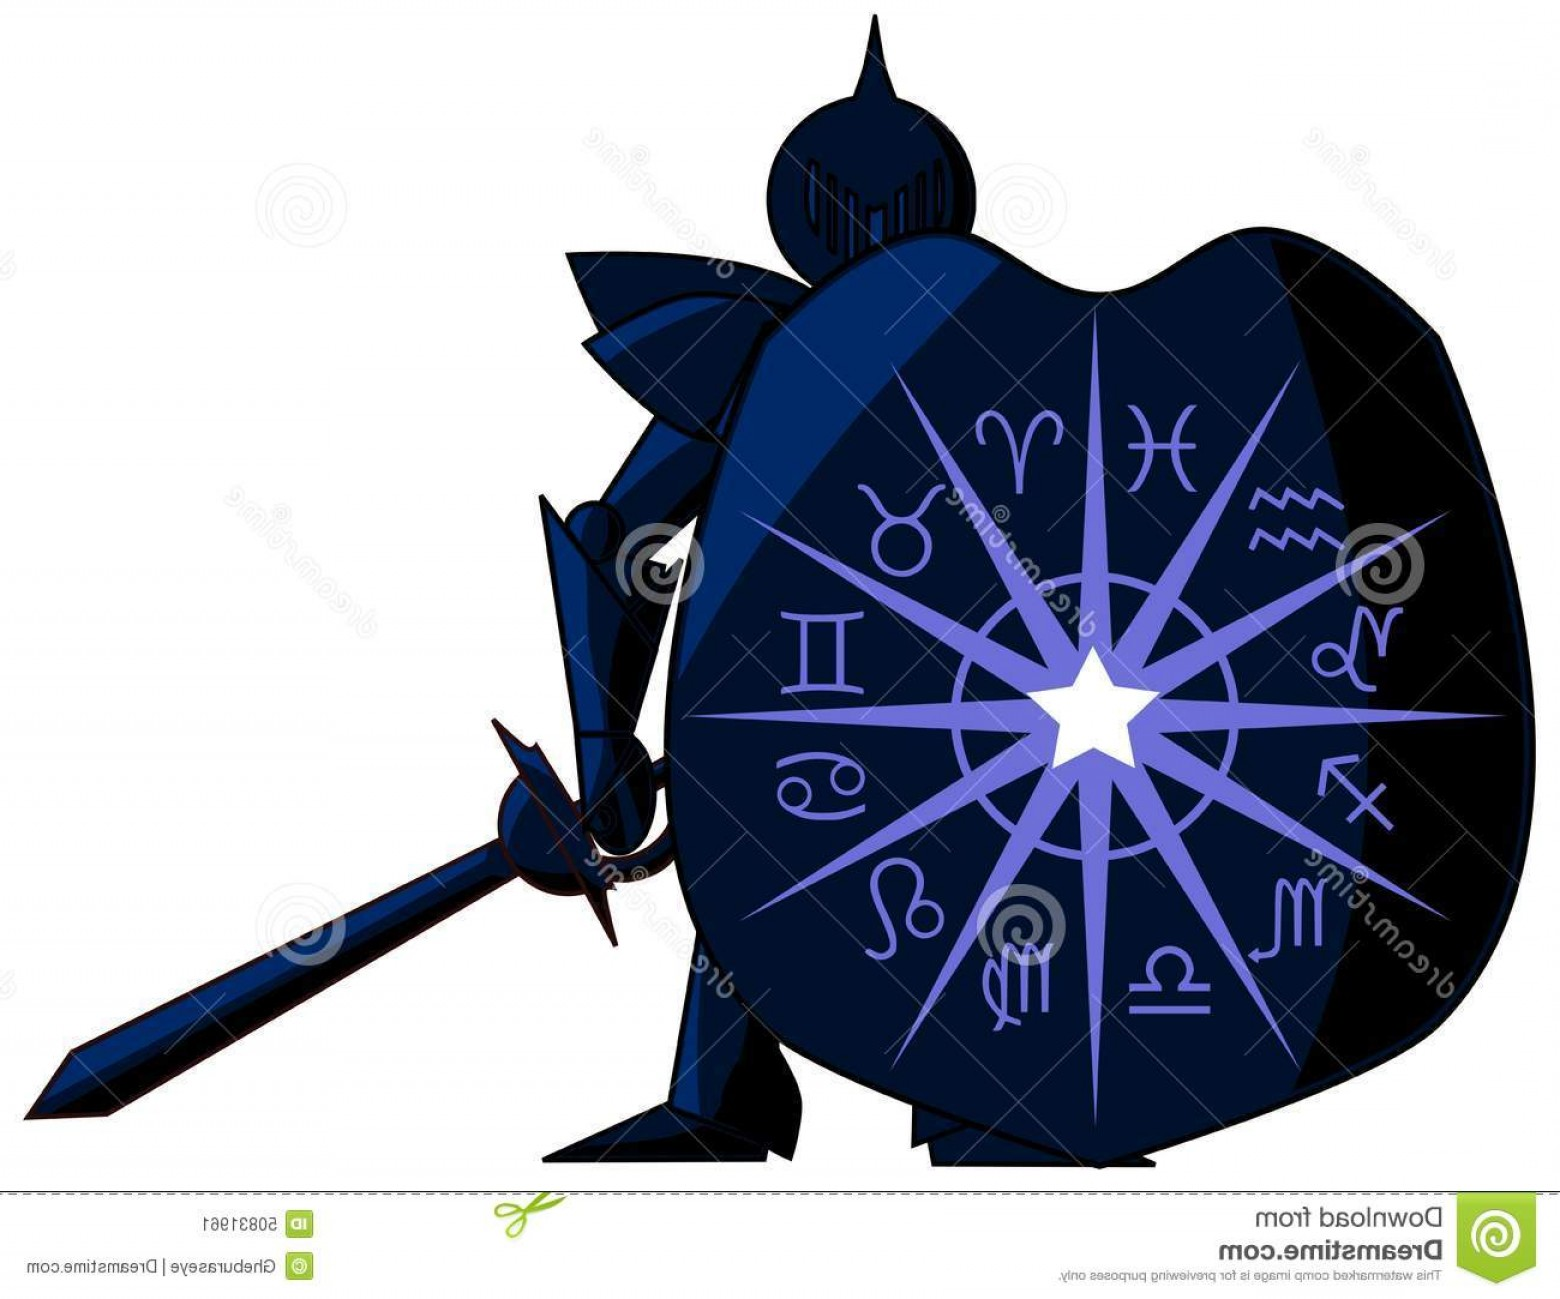 Game Of Thrones Sword Silhouette Vector: Stock Illustration Medieval Knight Zodiac Signs Illustration Representing Symbols Shield Sword Idea Can Be Used Image